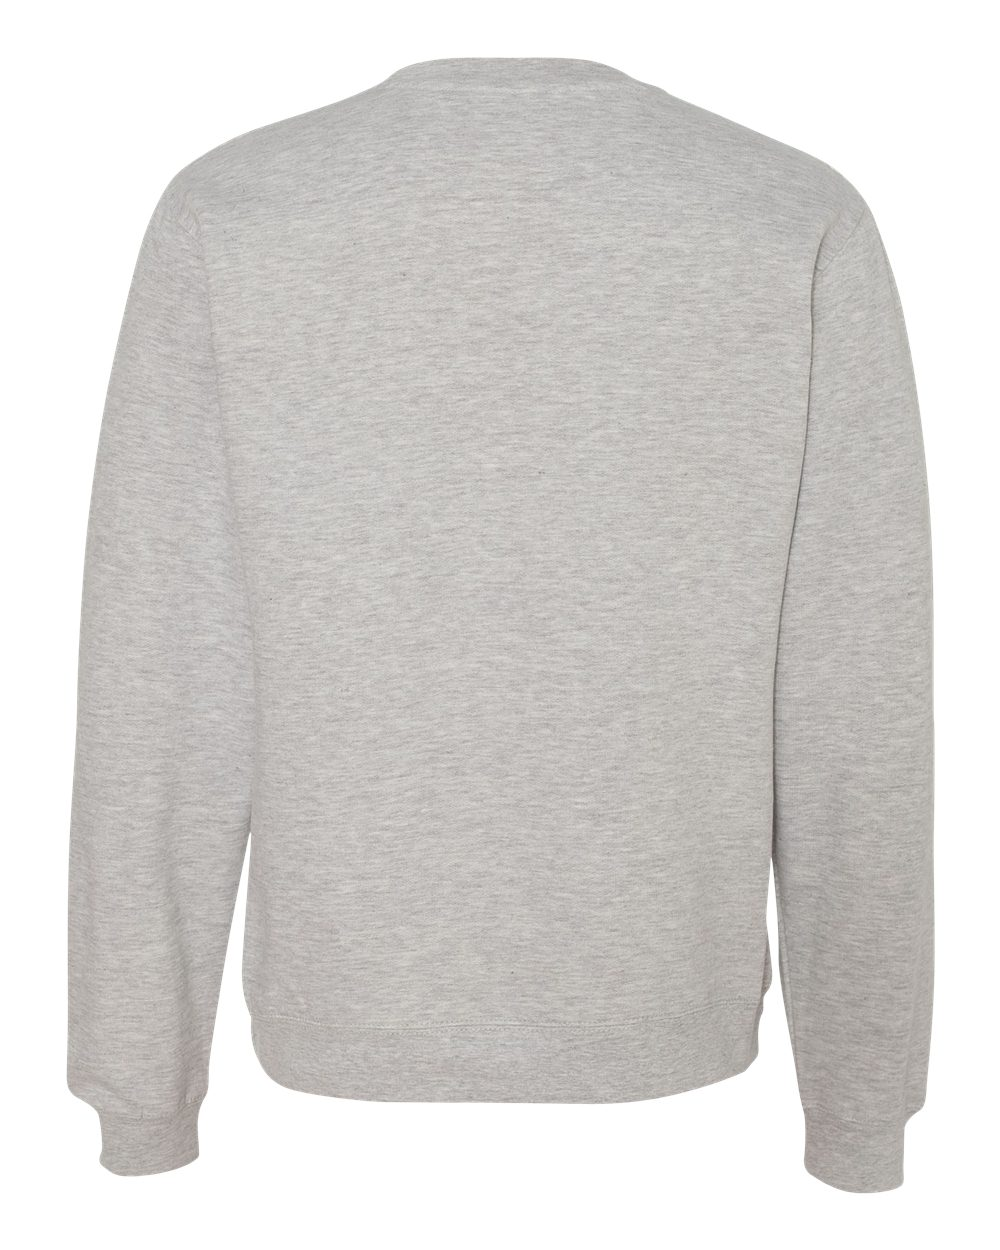 Independent-Trading-Co-Midweight-Crewneck-Sweatshirt-SS3000-up-to-3XL miniature 25